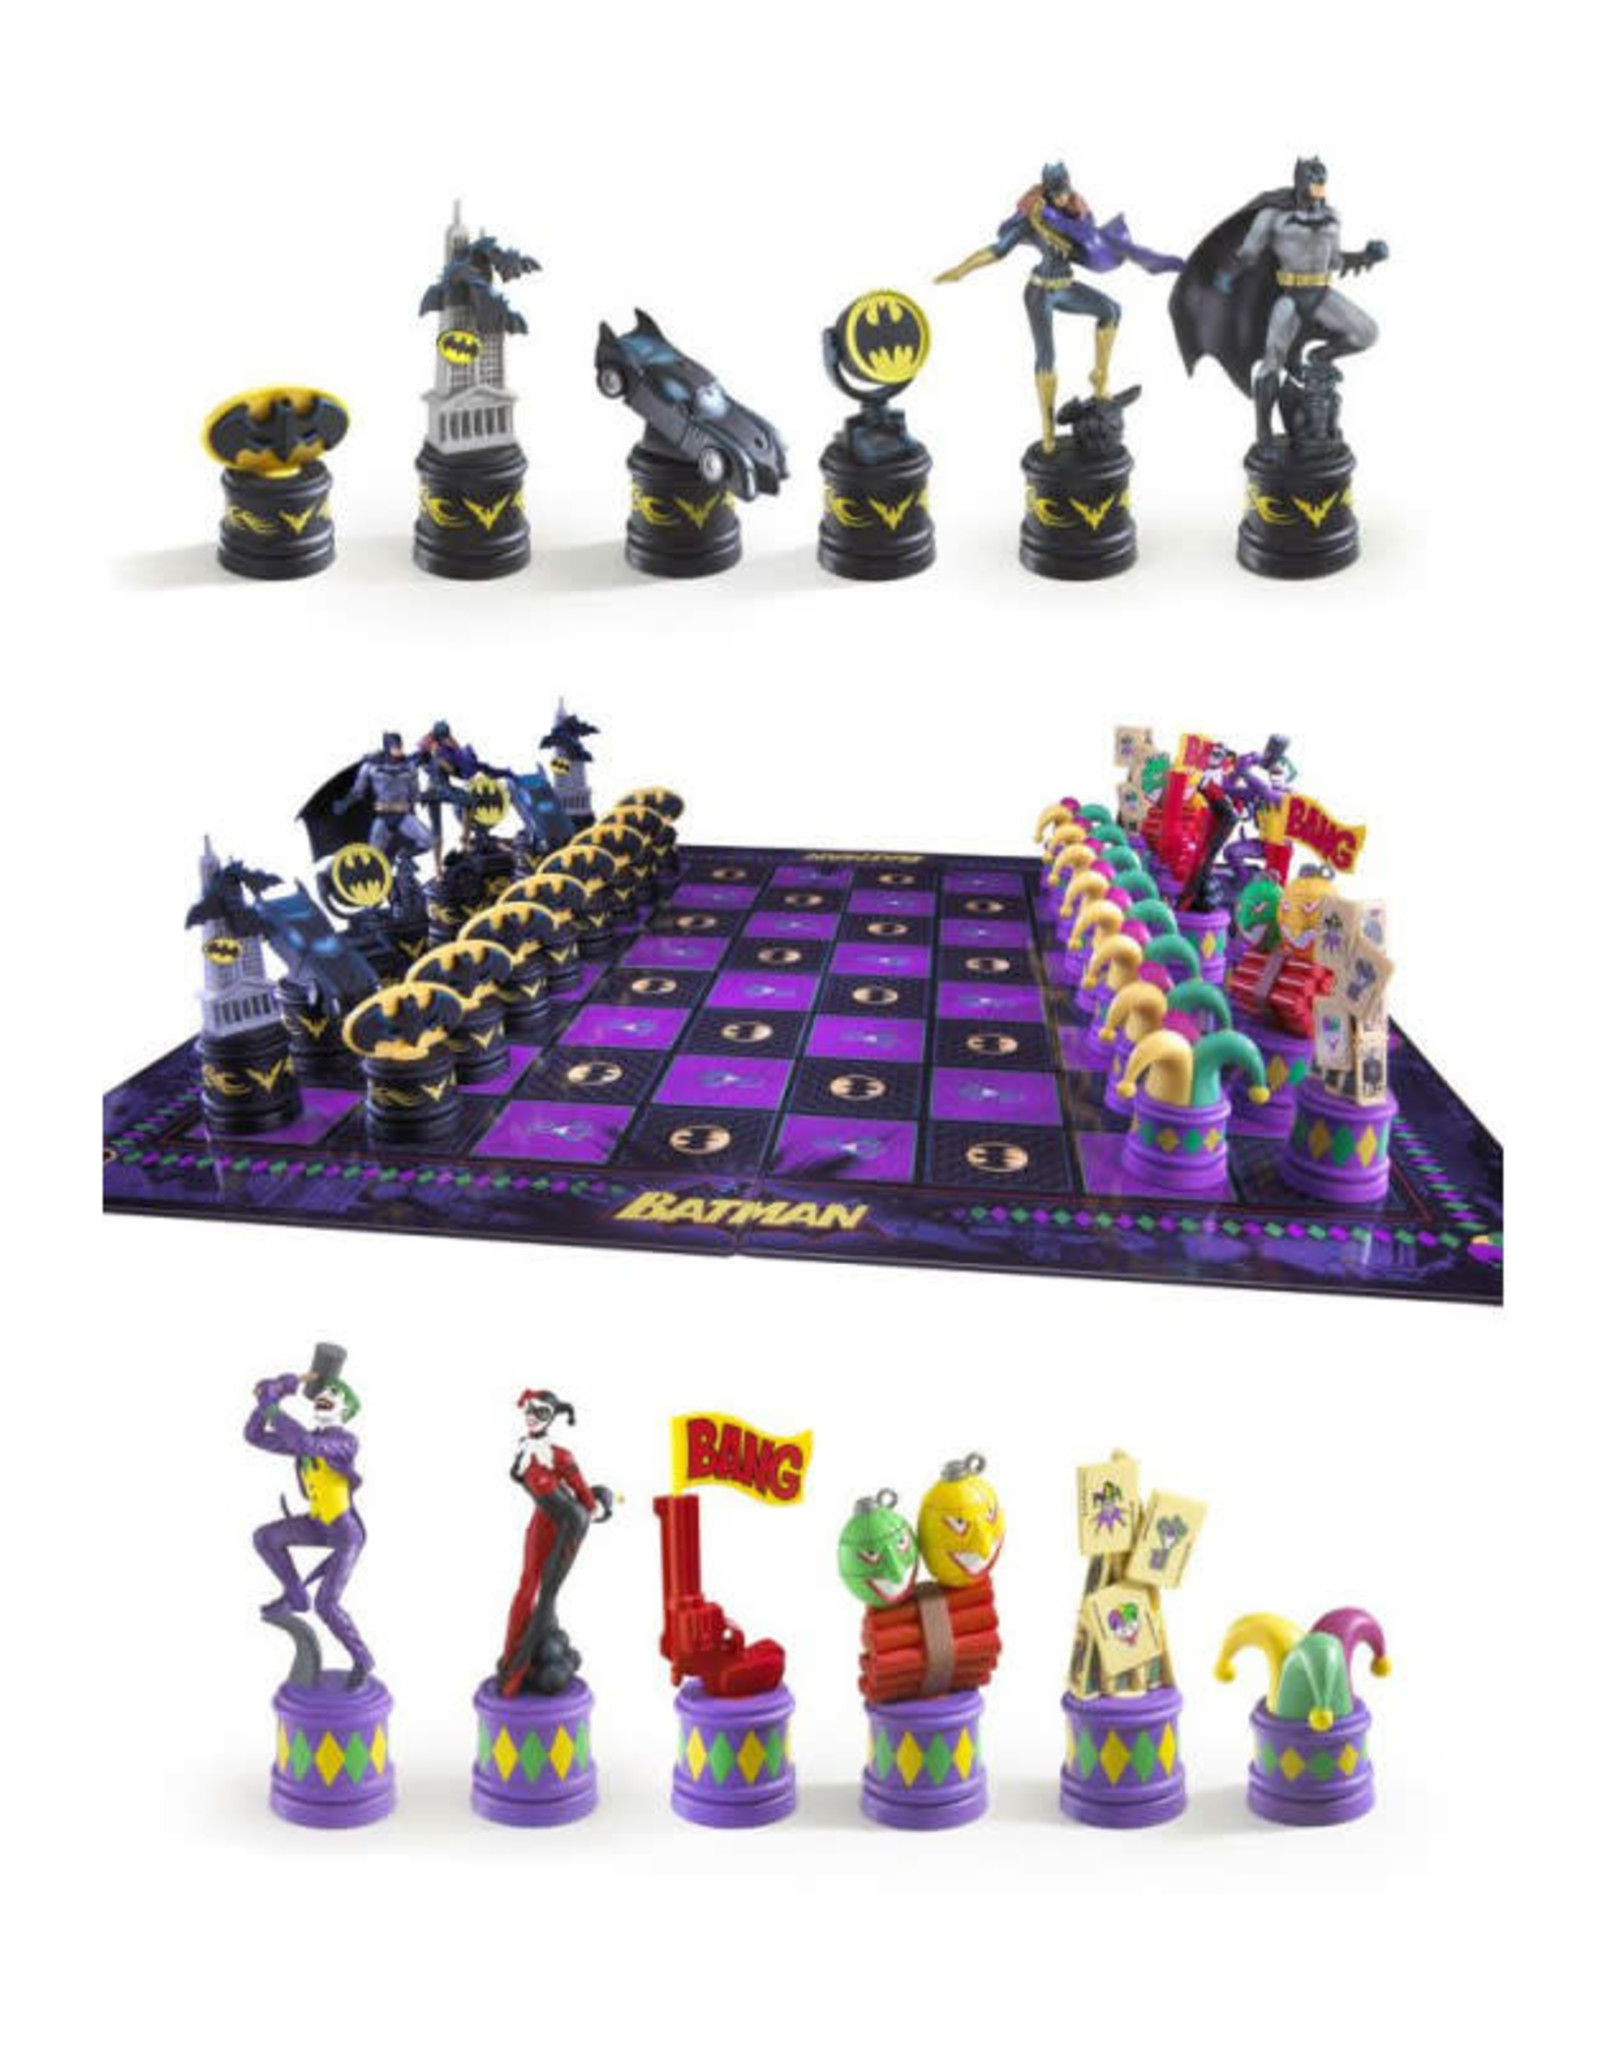 Noble Collection BATMAN Chess Set - The Dark Knight vs The Joker